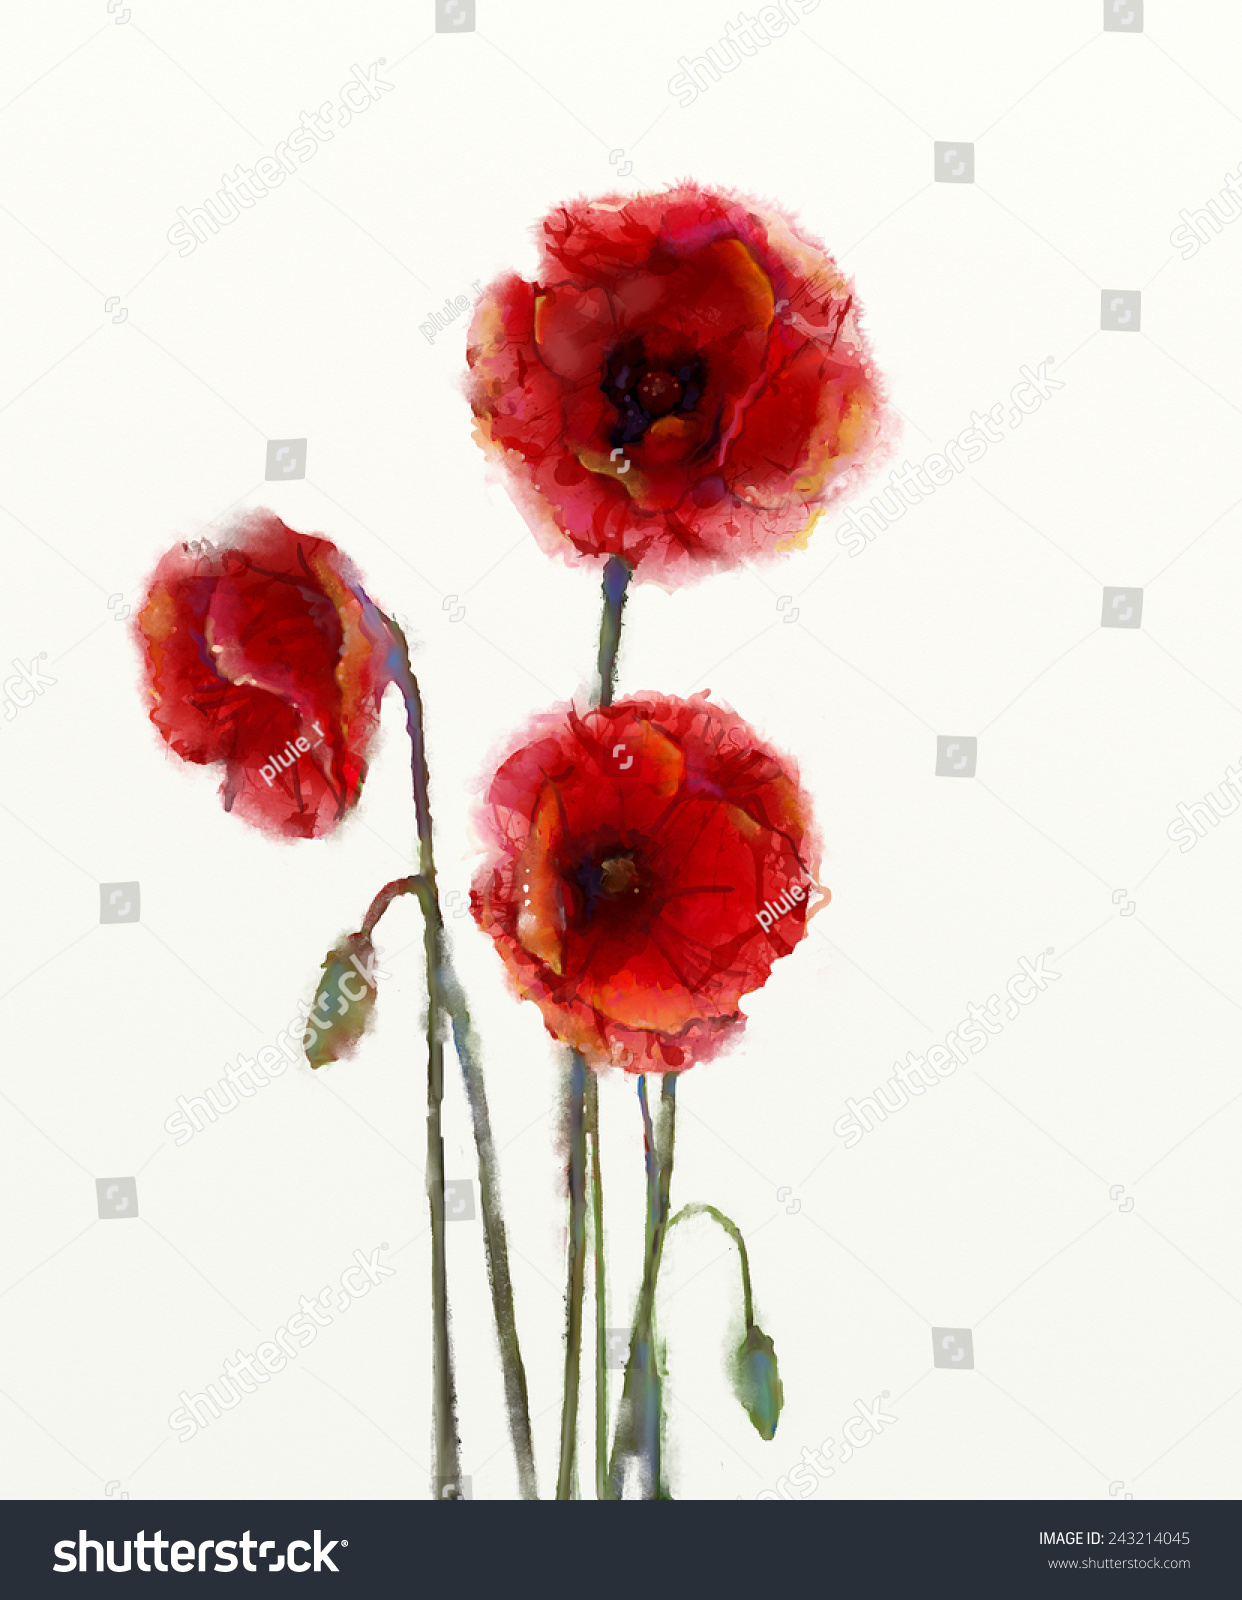 Red Poppy Flowers Watercolor Painting Isolated Stock Illustration